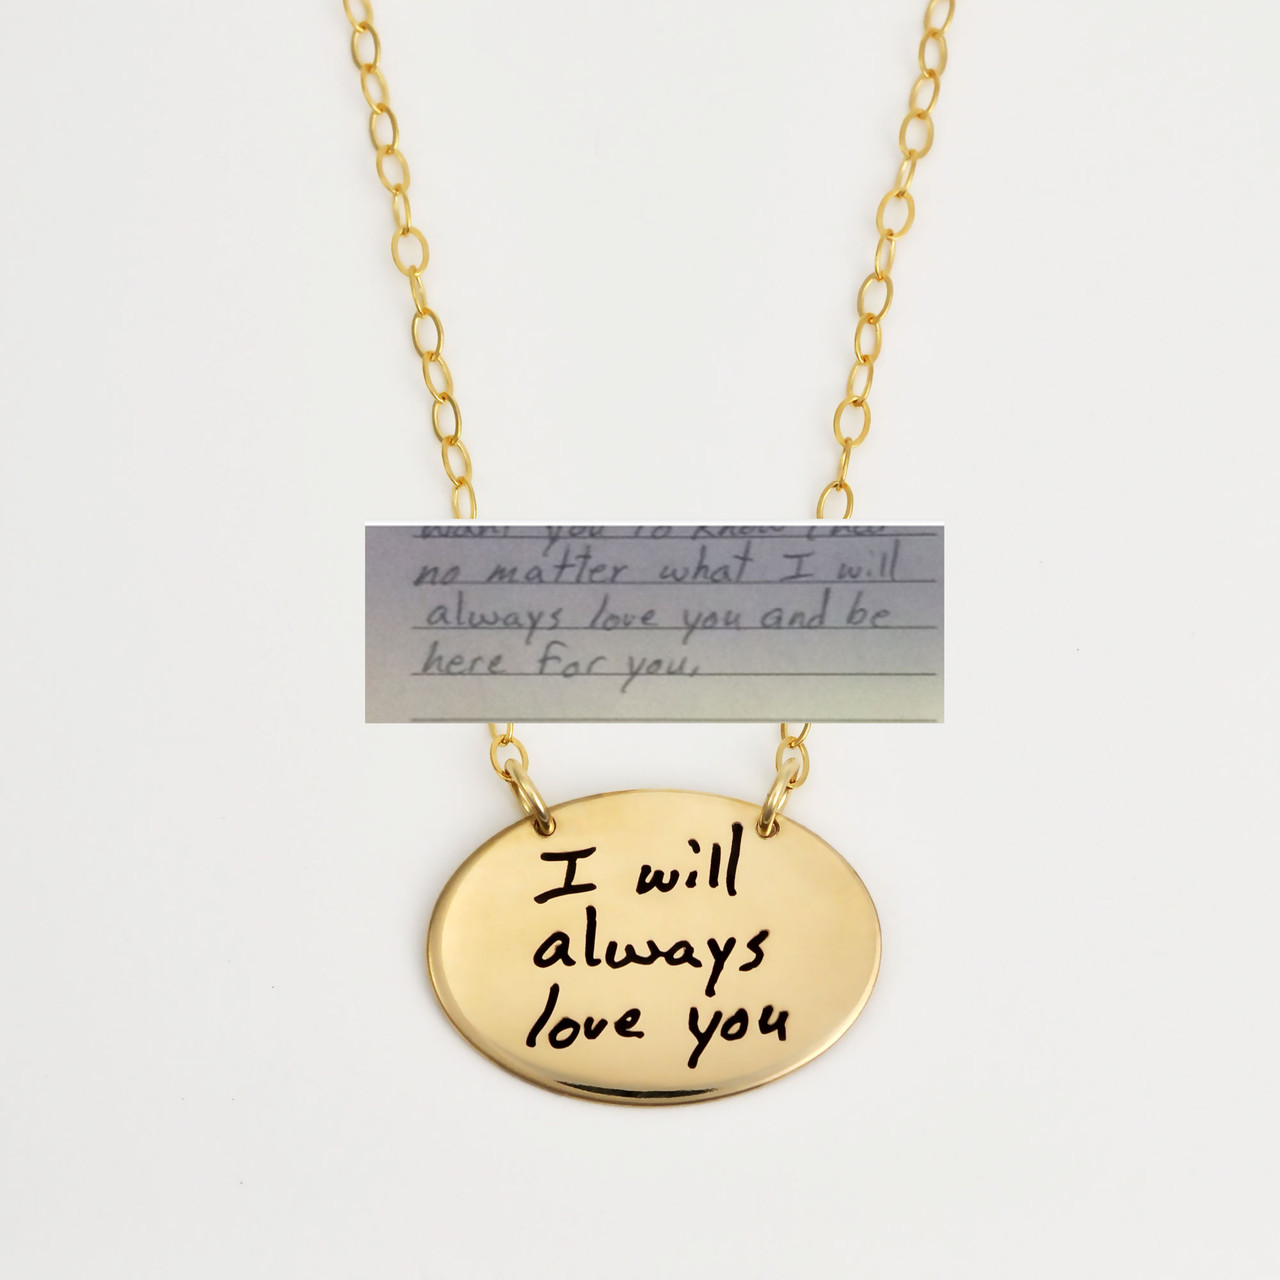 Gold oval necklace with your actual handwriting, shown on white, with original handwriting